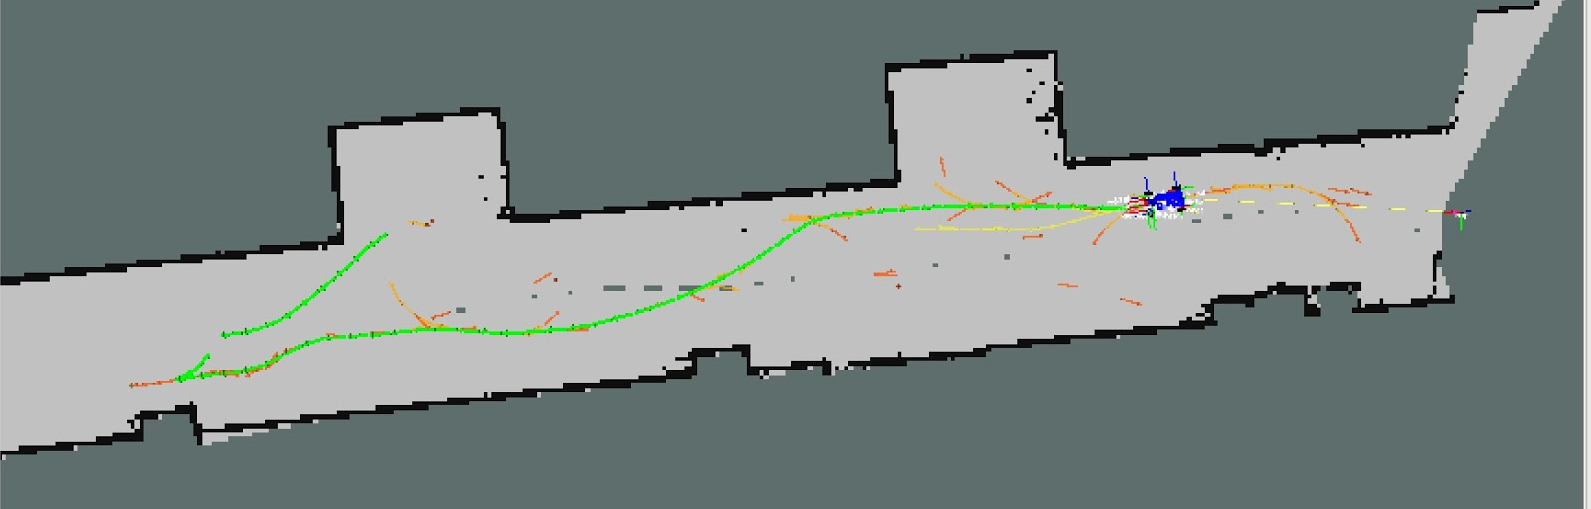 The robot following a RRT-generated path in simulation